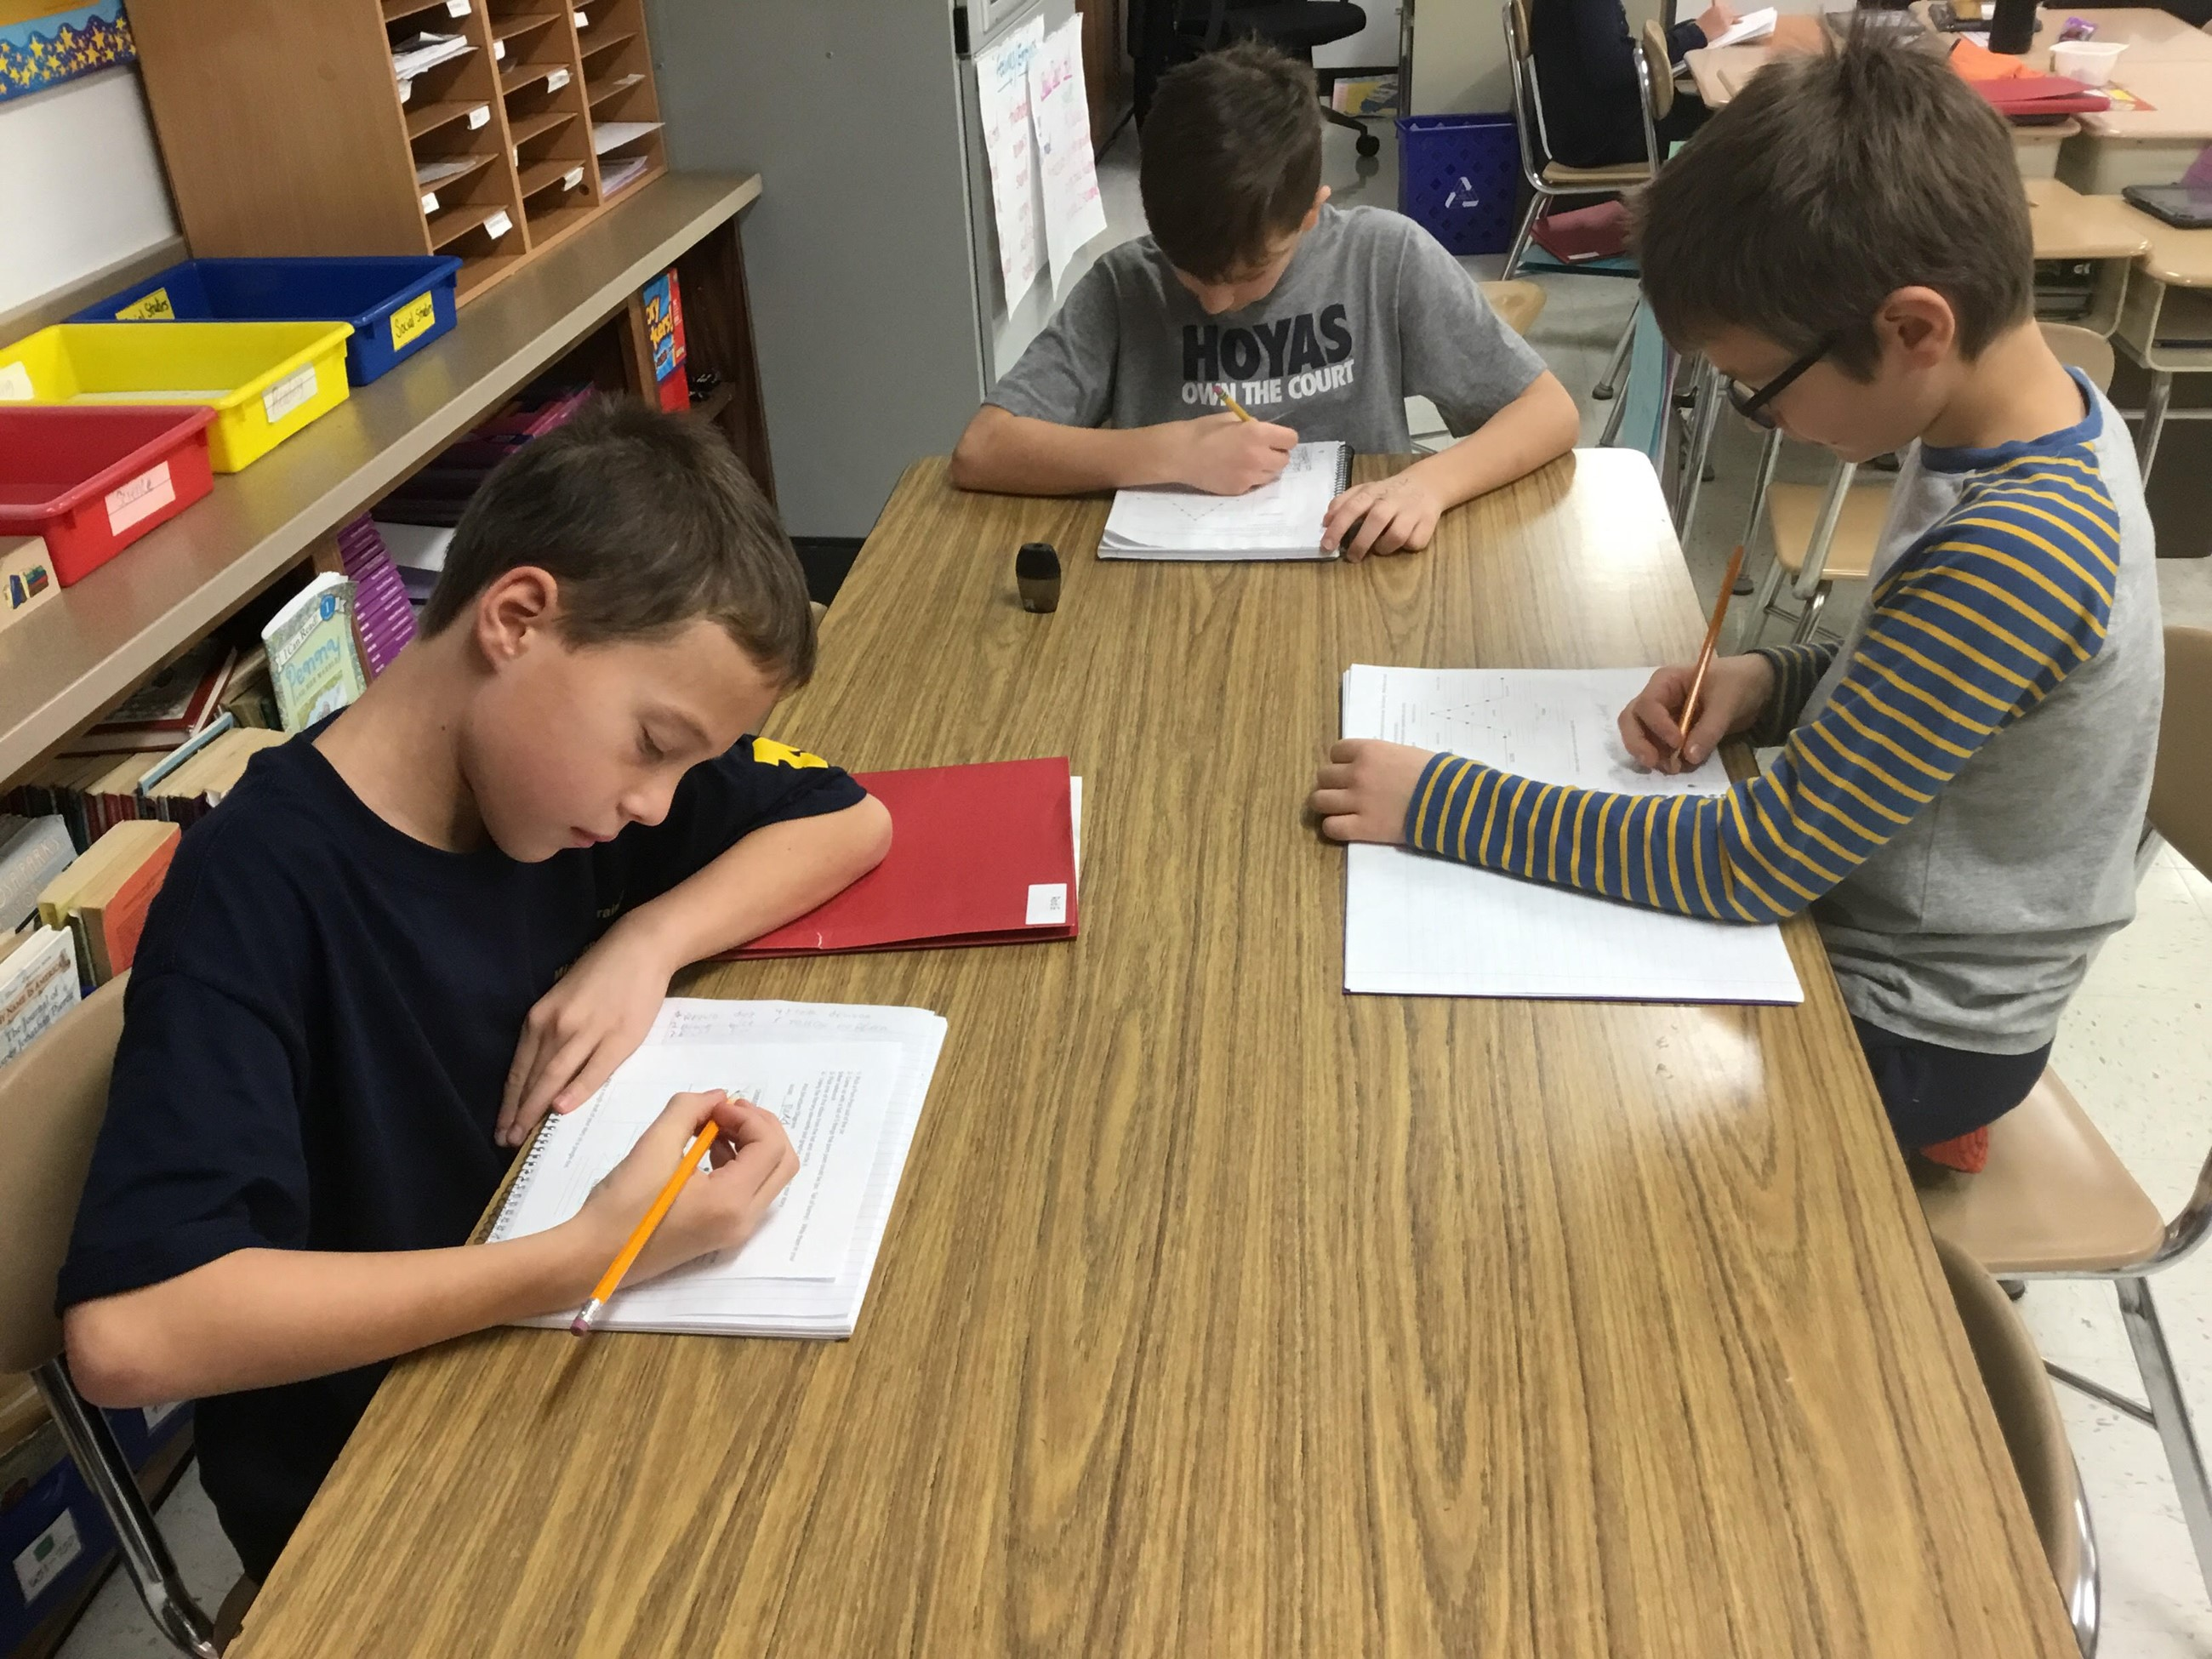 Mrs. Brusso's 4th Grade class group of boys writing at a rectangular table.